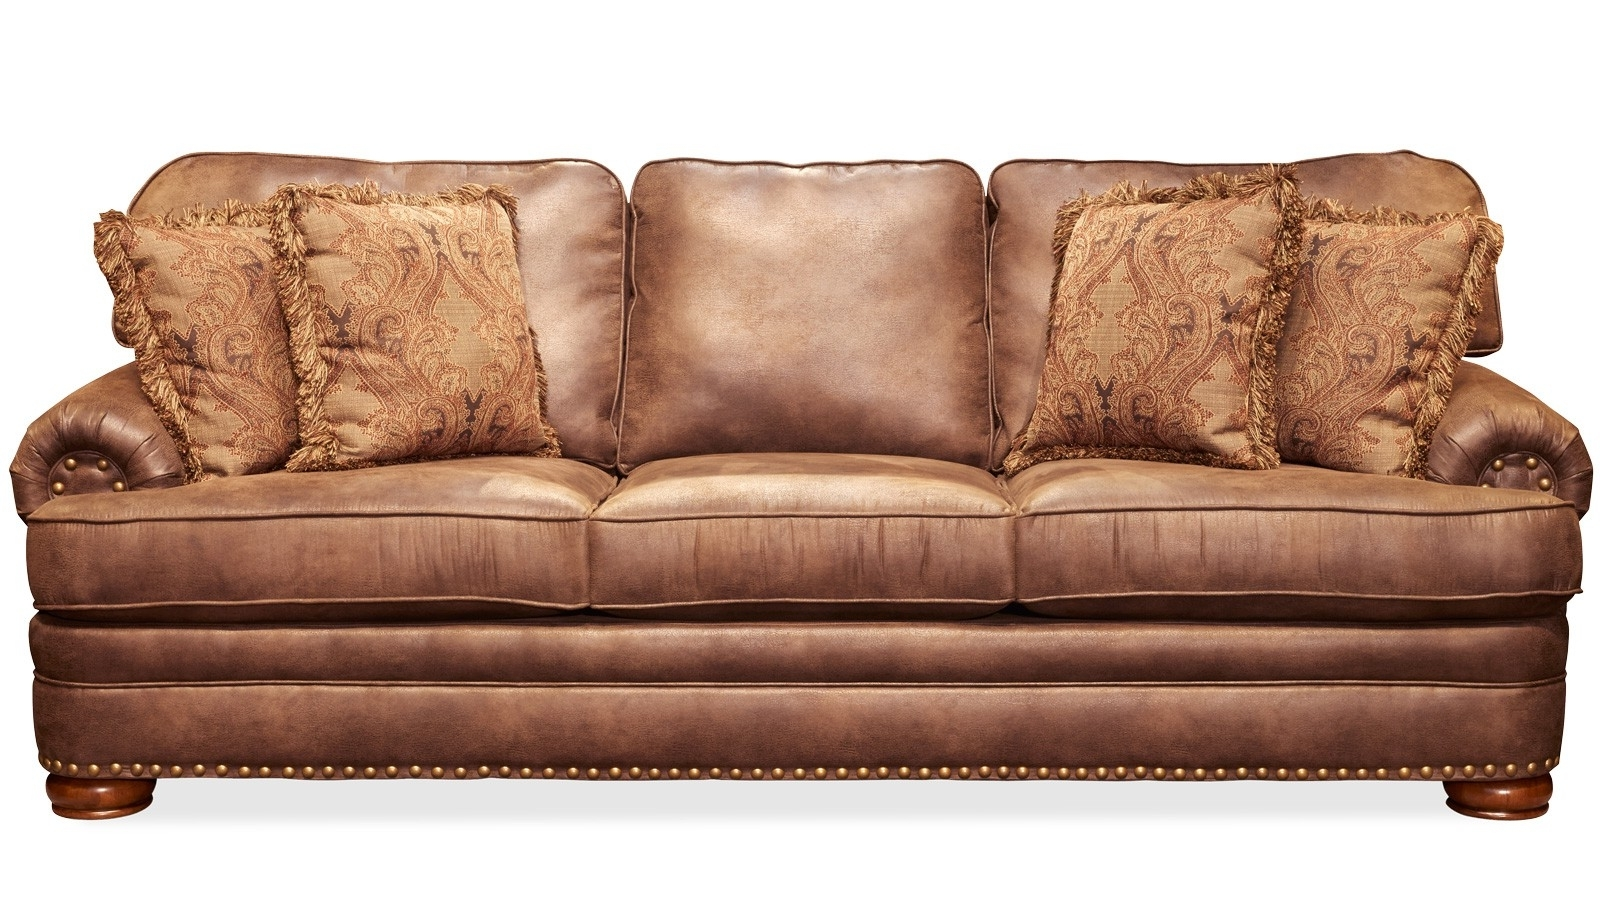 Gallery Furniture For El Paso Sectional Sofas (View 9 of 15)